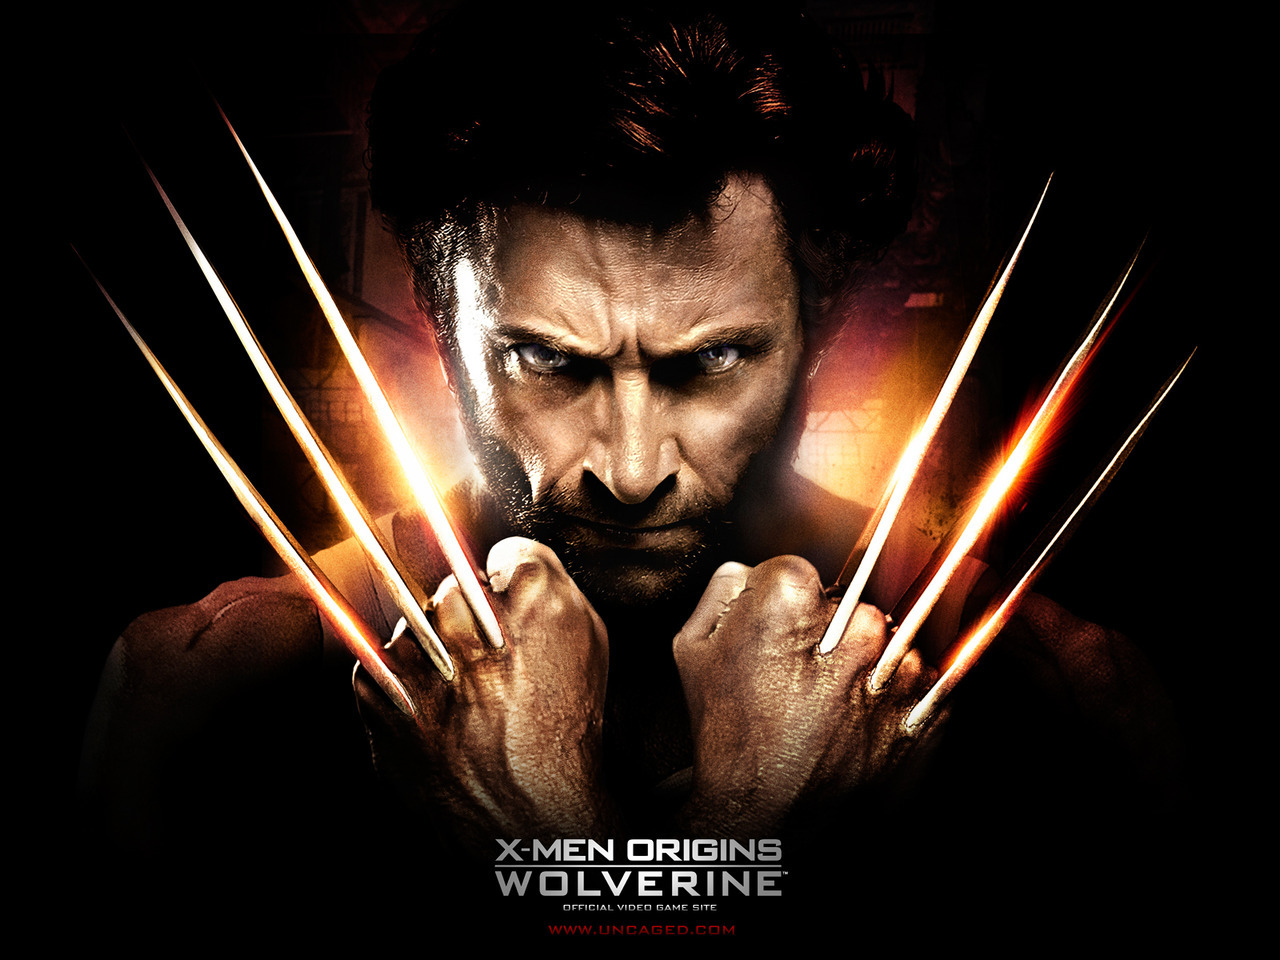 Title: X-Men Origins: Wolverine [Uncaged Edition] (2009) Synopsis: A man with regenerative healing powers gets an upgrade and becomes the ultimate killing machine. Why you should like it: While the film disappointed many a comic book fan (LOL IT SUCKS), the game pleased a lot of people by remaining mostly true to the comic book incarnation of the character. There's a lot of blood and gore, characteristic of Wolverine's personality. (You shove a dude's head into some helicopter blades. IT'S PRETTY FUCKING BRUTAL.) Also included are the Sentinels, giant mutant-hunting robots that plague the X-Men in the comics. (Giant Sentinel boss is the best boss, because FUCK DEADPOOL'S BOSS FIGHT.) Availability: PS3, Xbox 360 (maybe pc?)